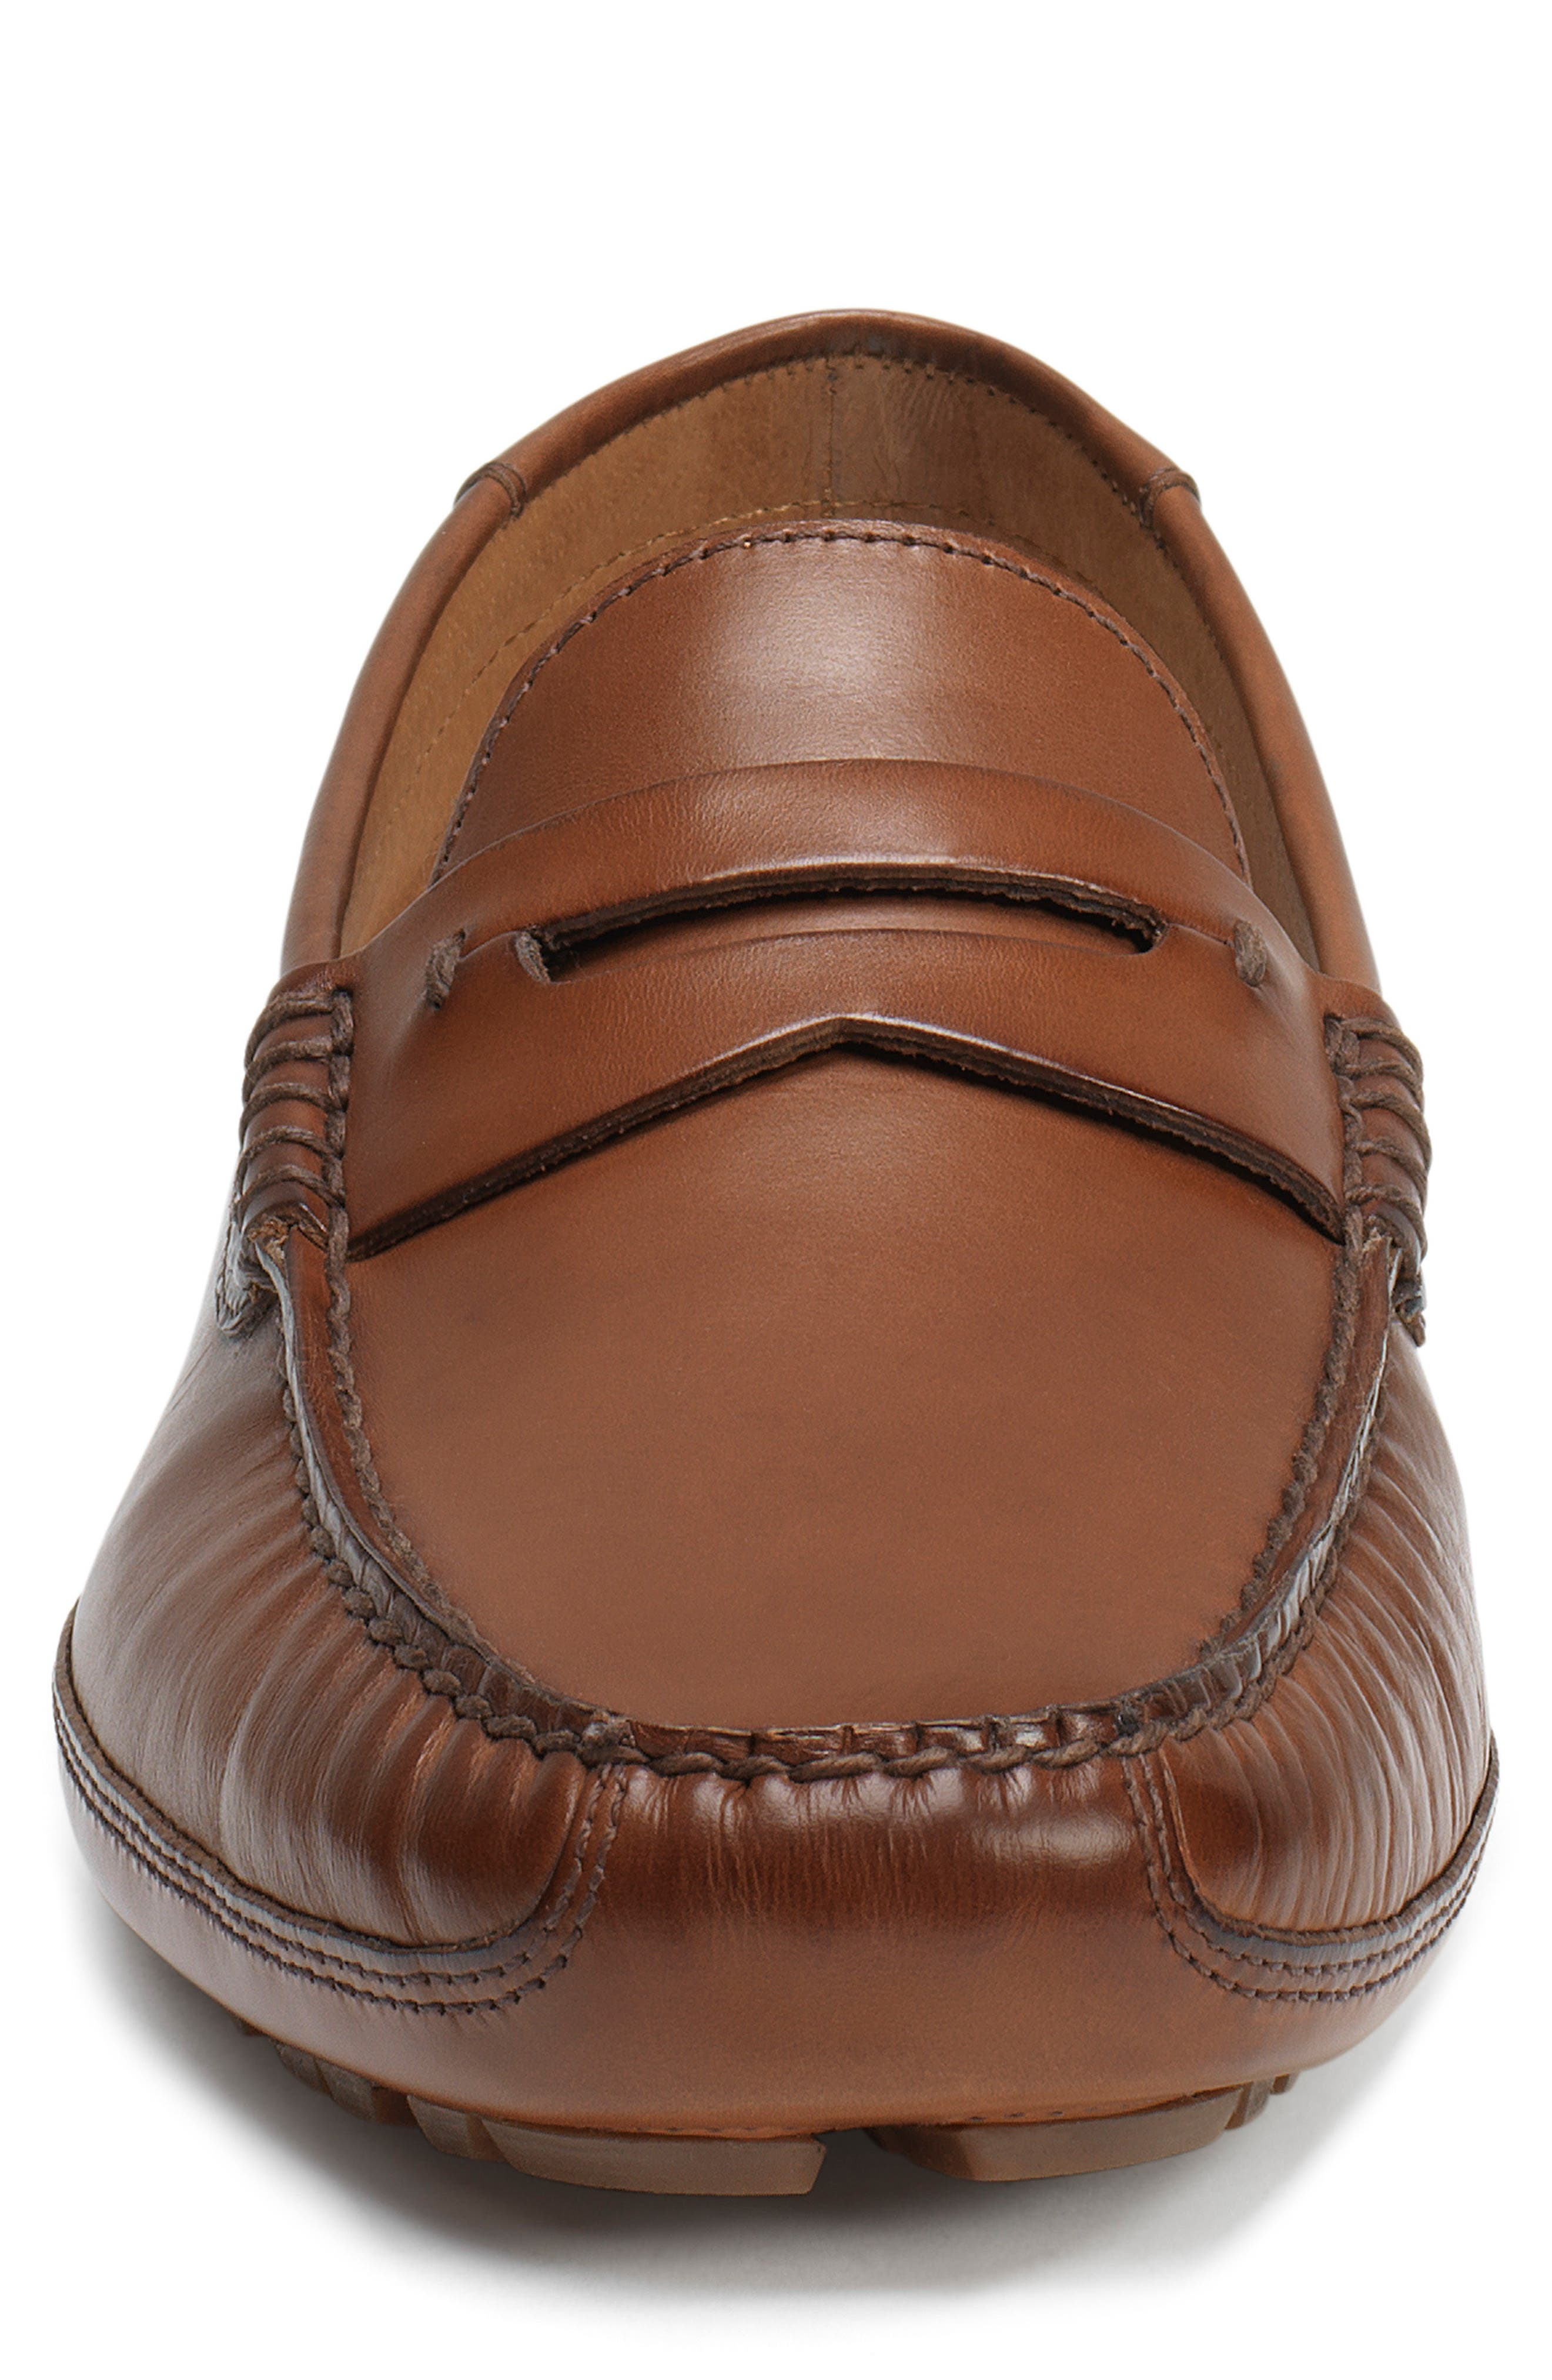 Dawson Water Resistant Driving Loafer,                             Alternate thumbnail 4, color,                             Light Brown Leather